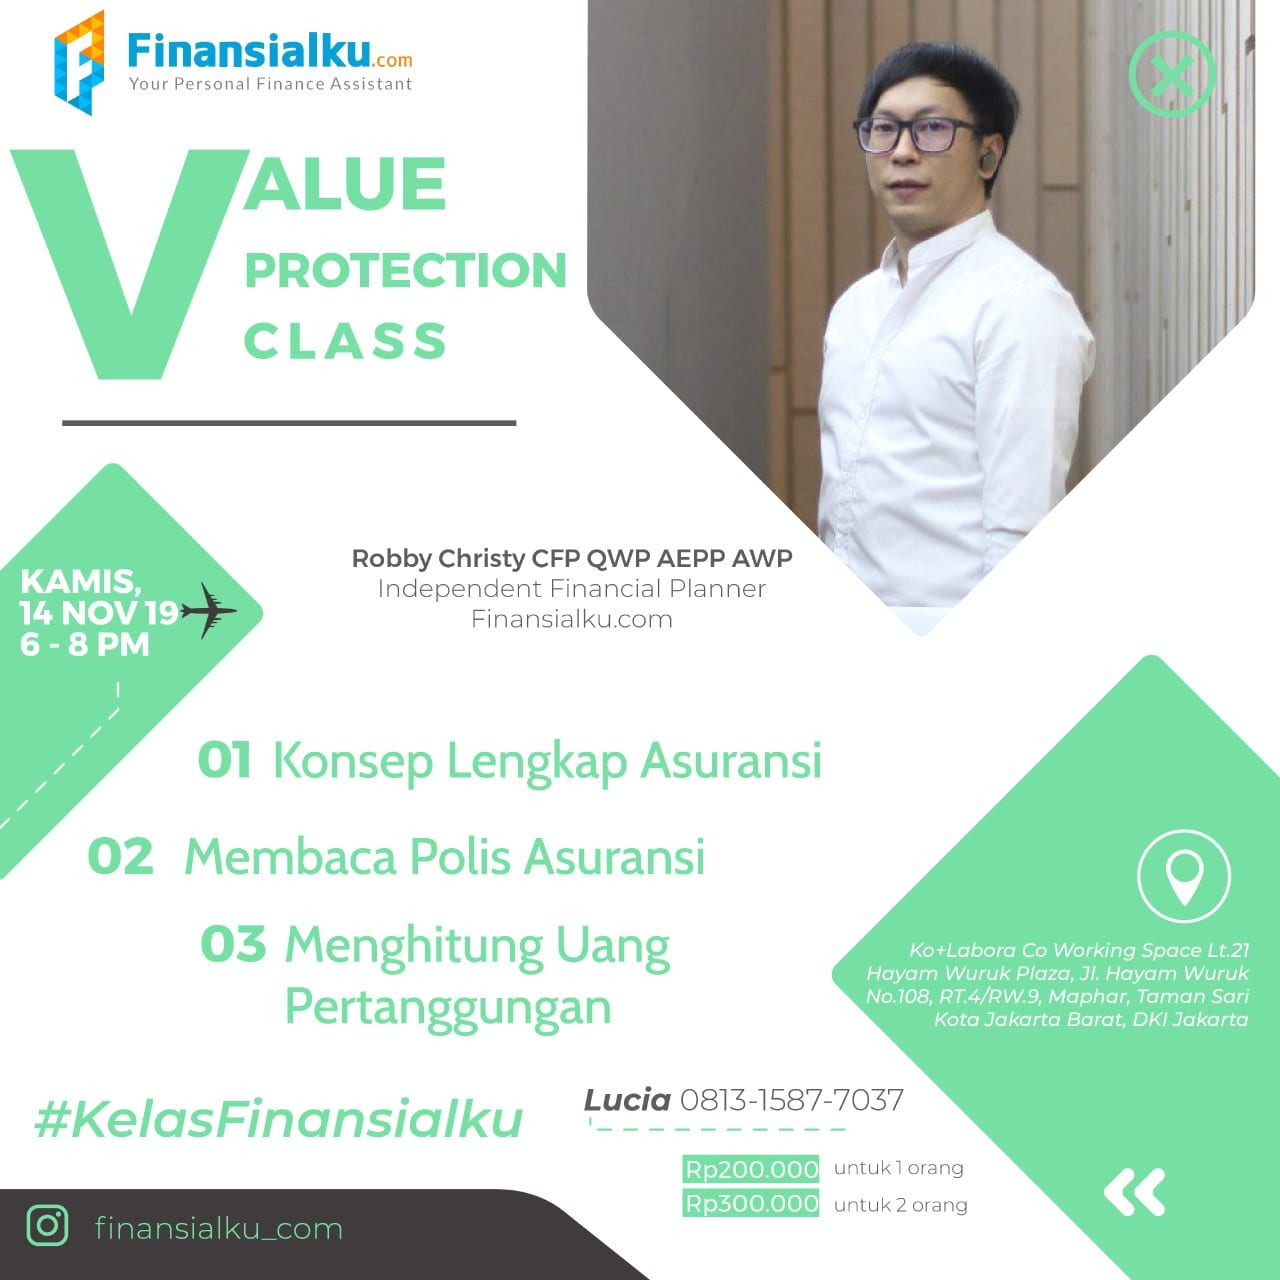 value protection jakarta 14 Nov 2019